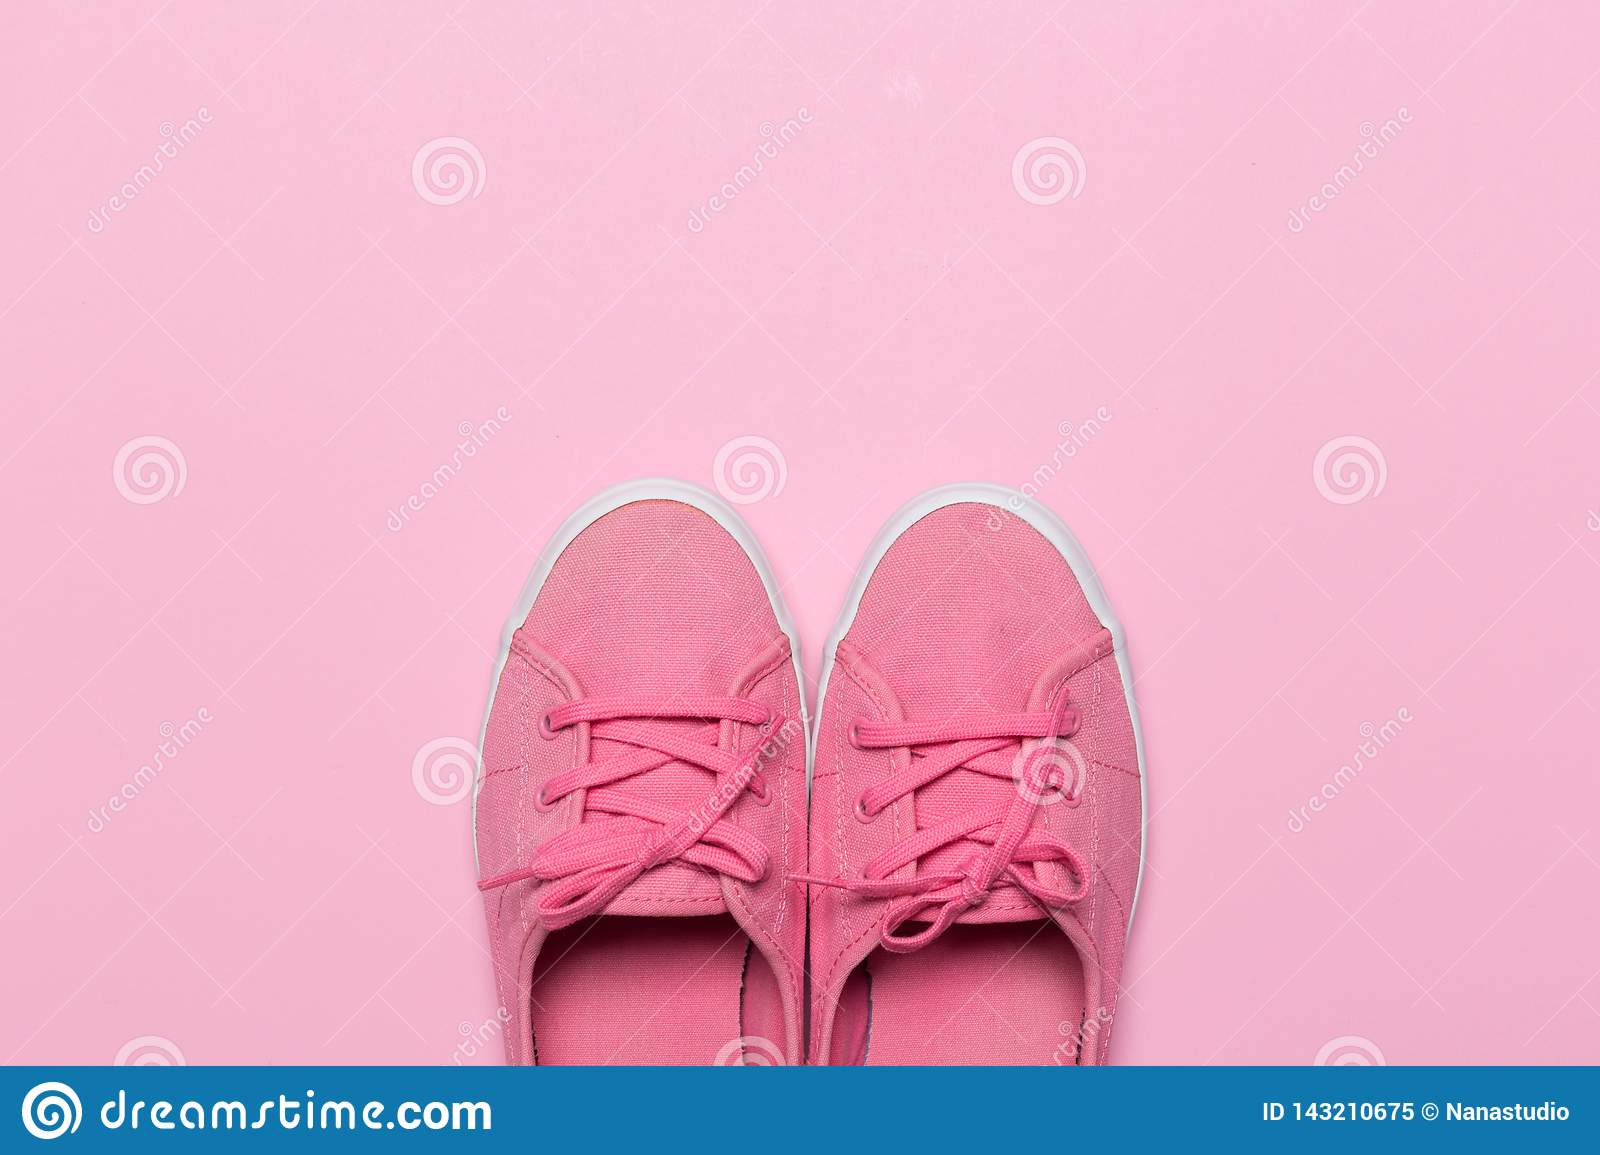 Pink shoes on a pastel background. Top view.